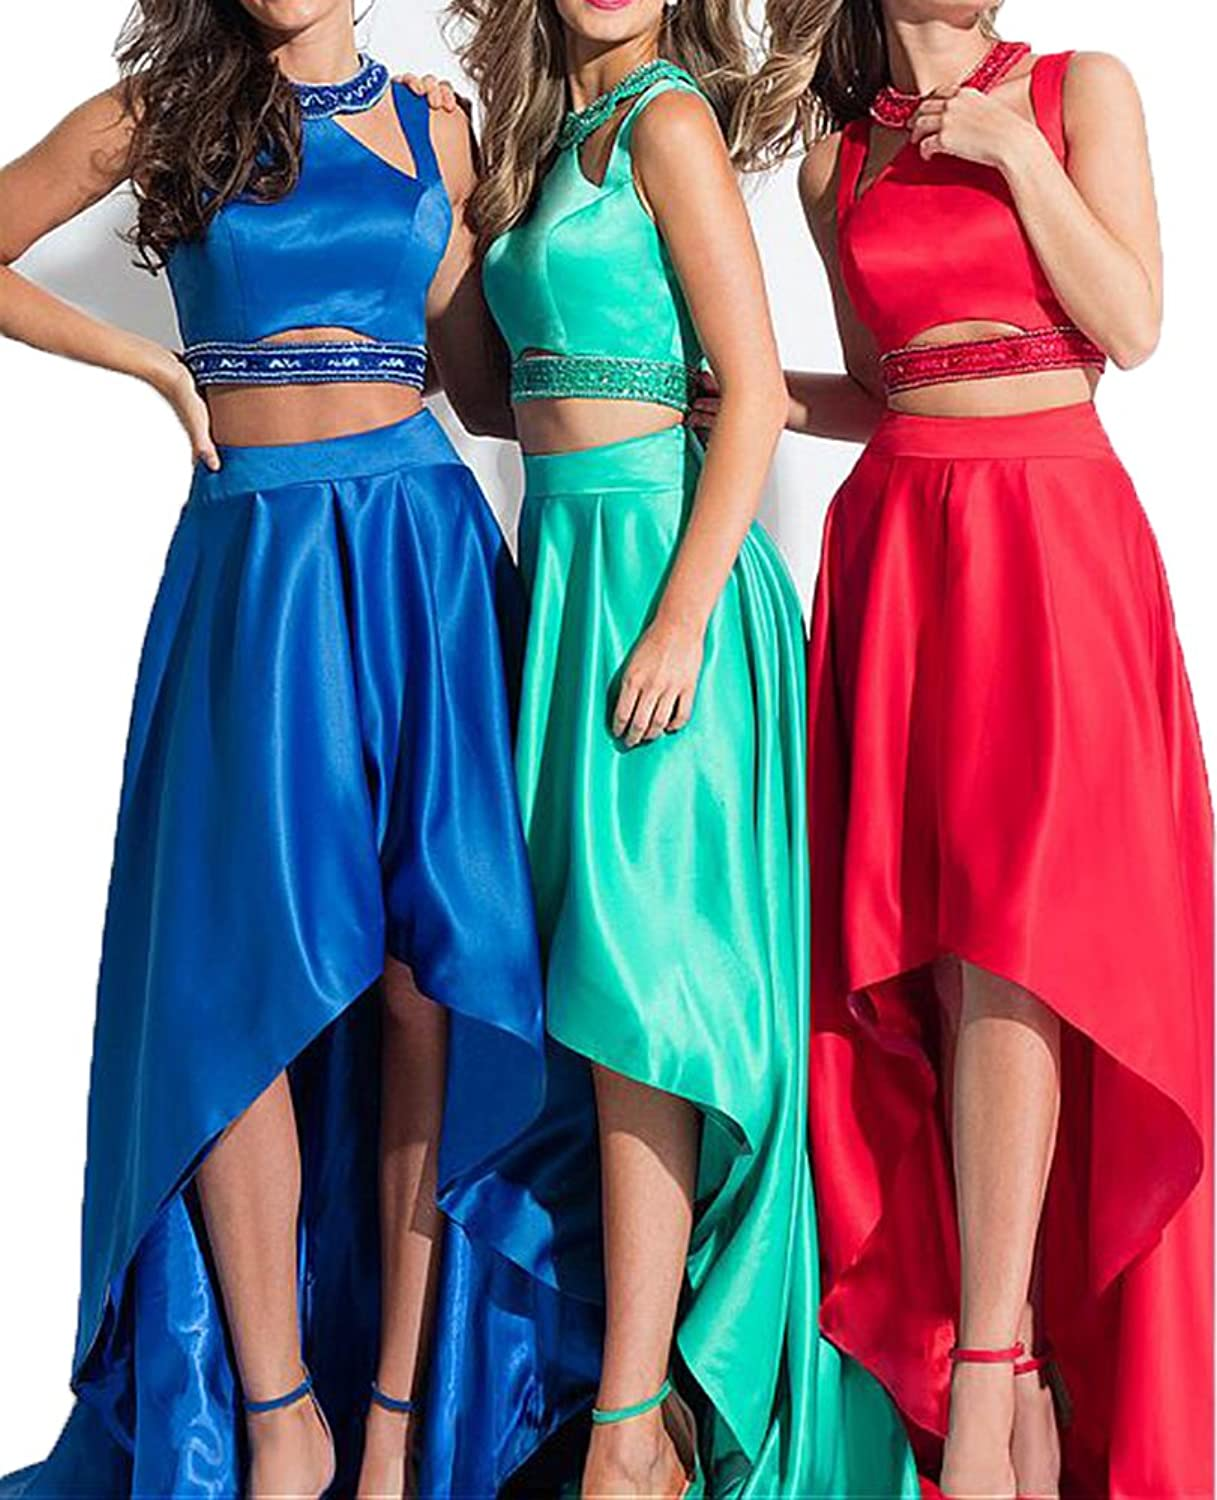 Chenghouse Satin 2 Piece Prom Dresses 2018 High Low Prom Dress